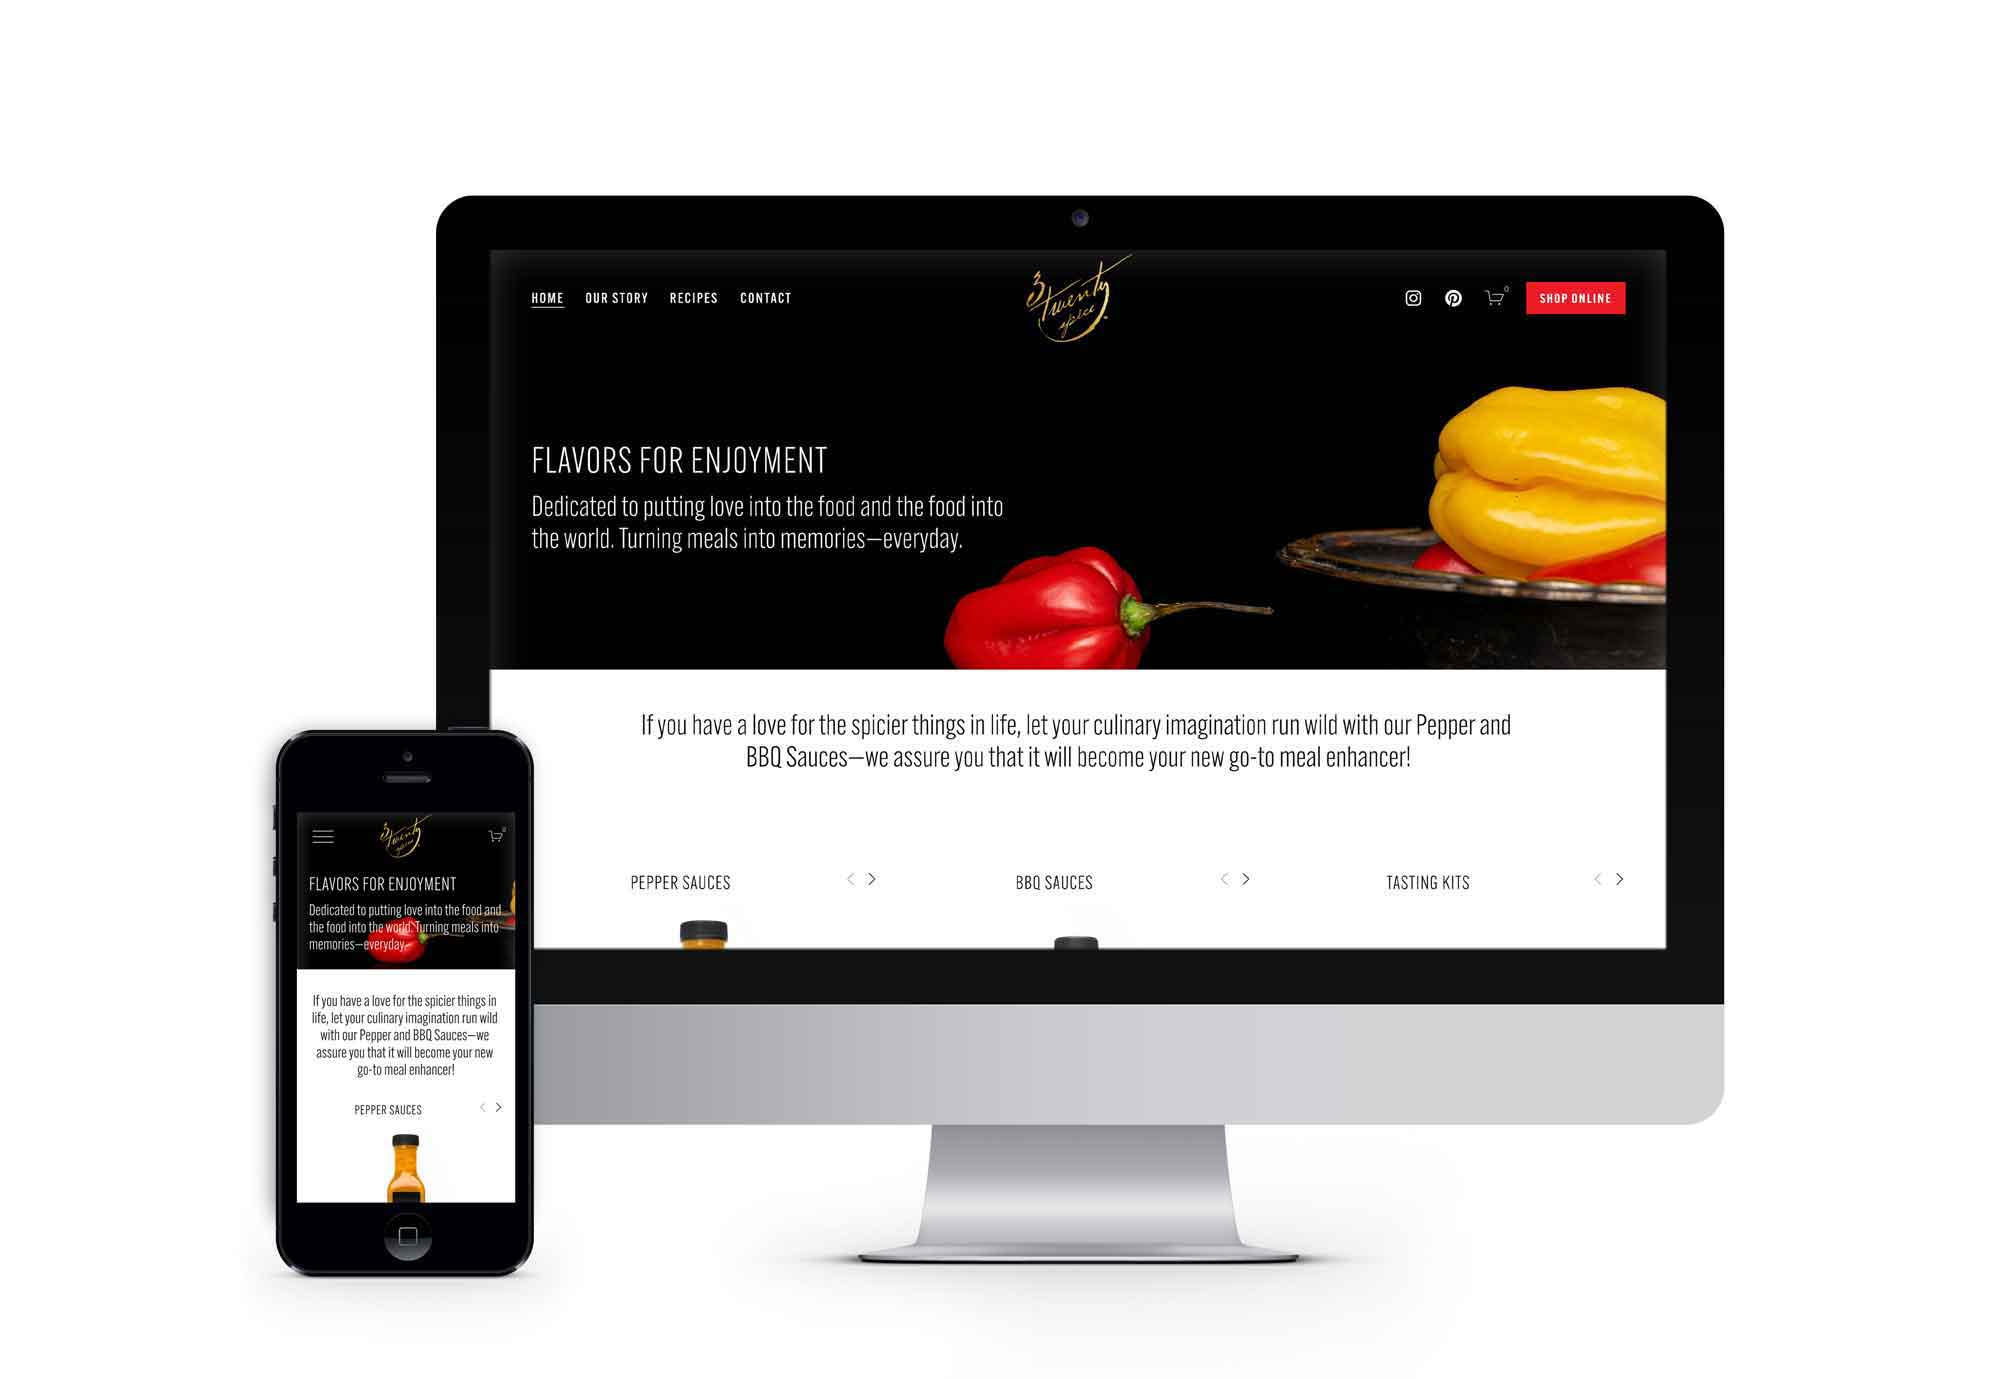 The 3TwentySpice e-commerce website provides an easy-to-shop interactive experience.